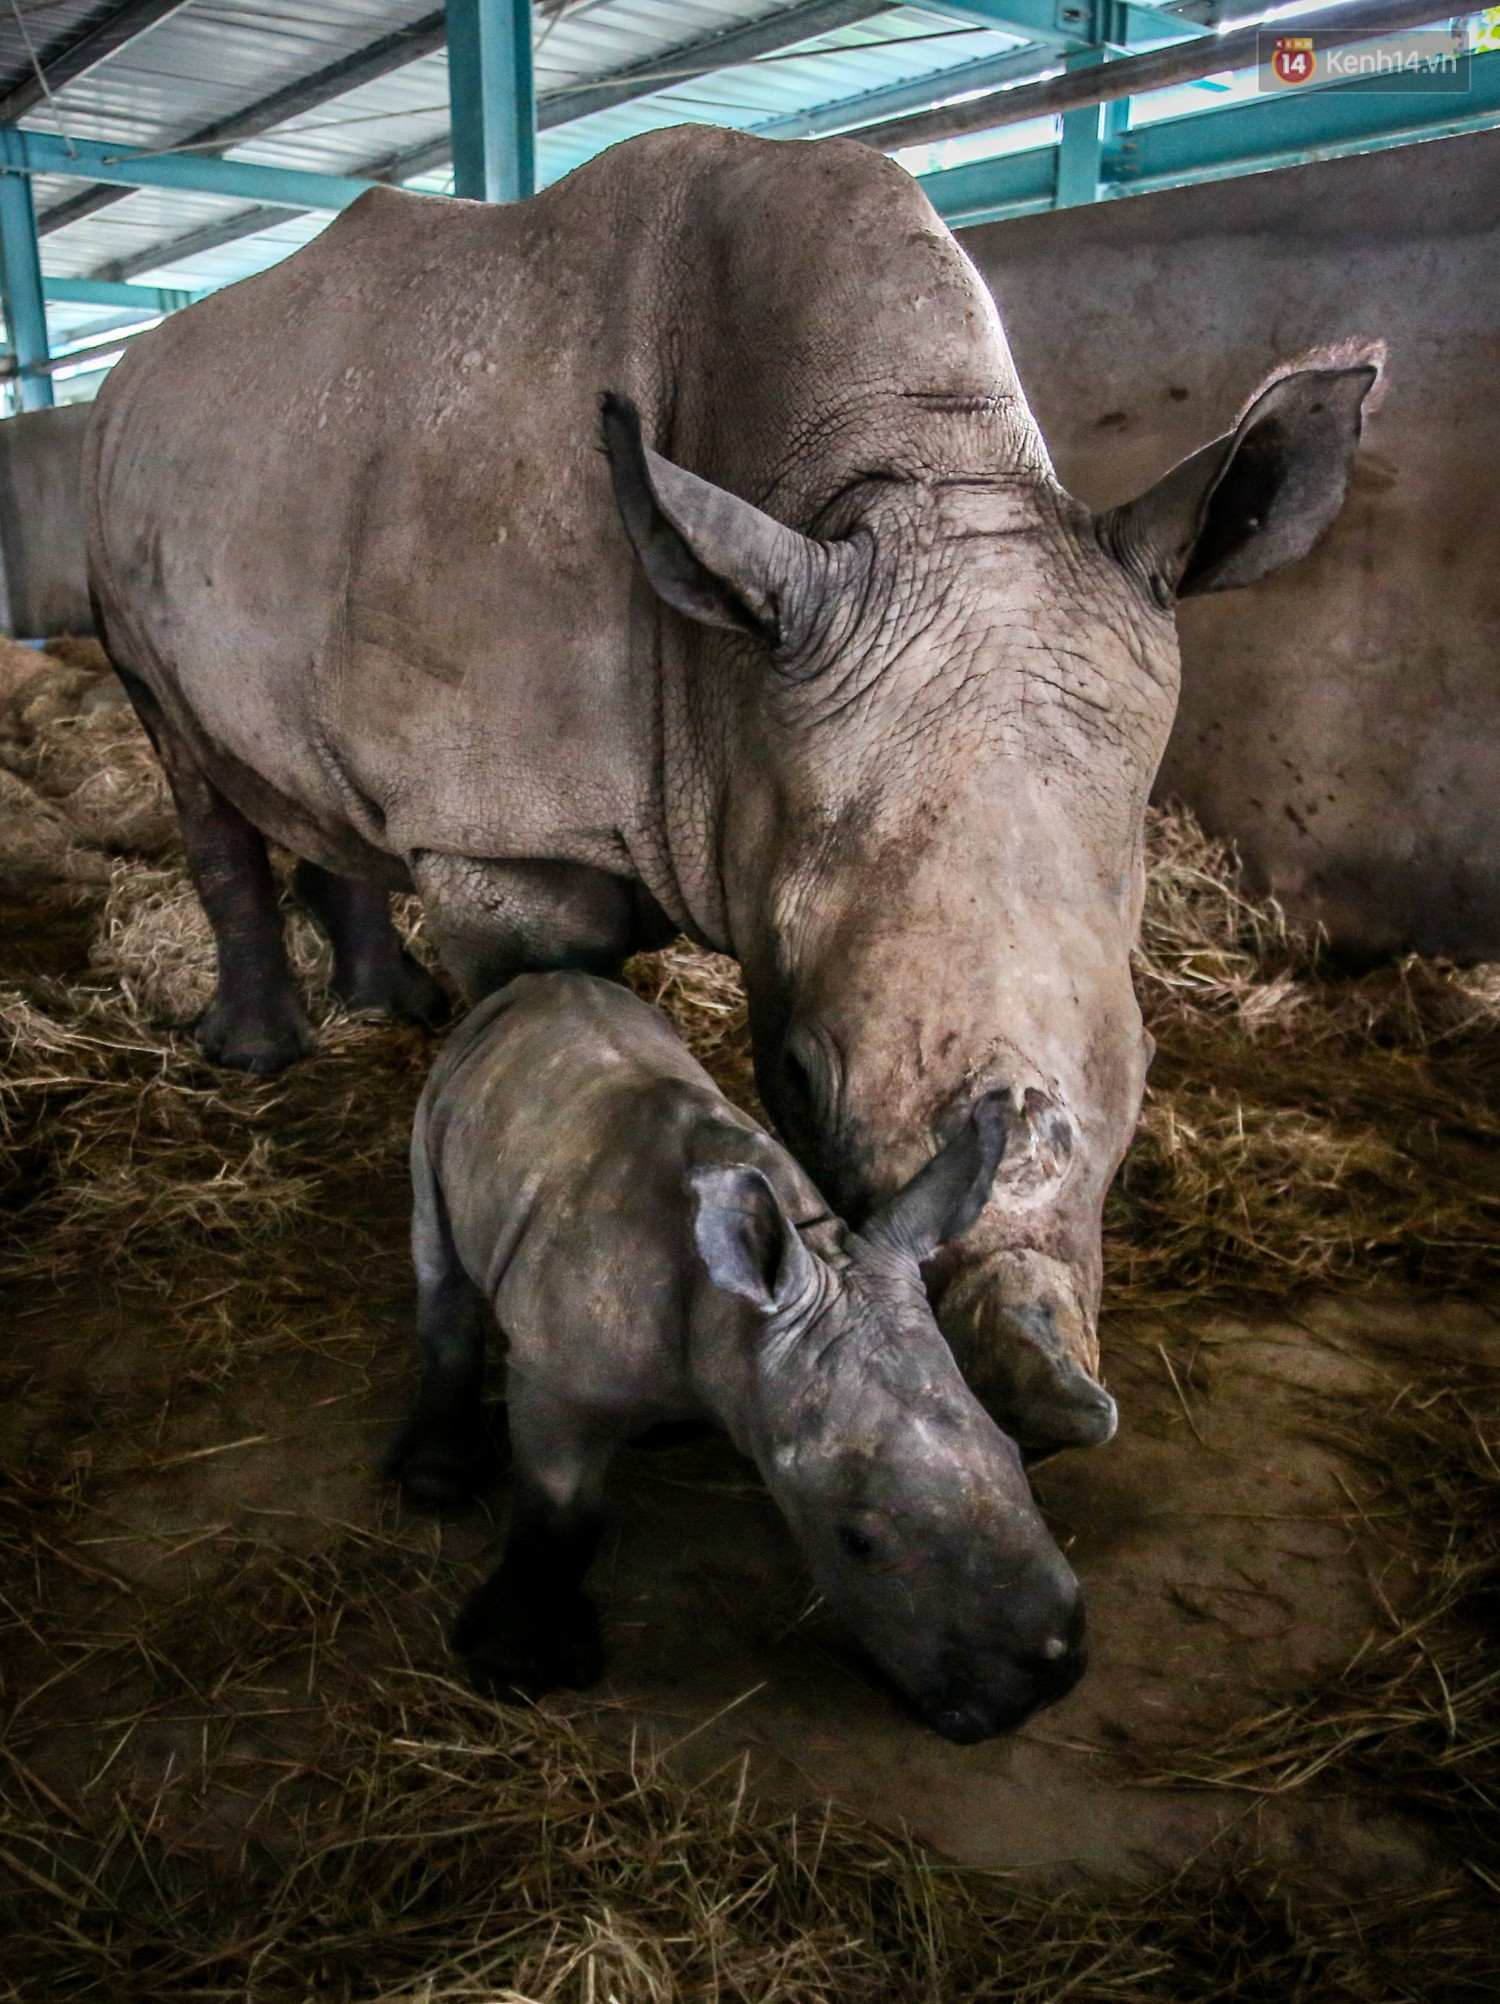 In the past ten years, they were born in Vietnam near two rare white rhinos - Photo 7.